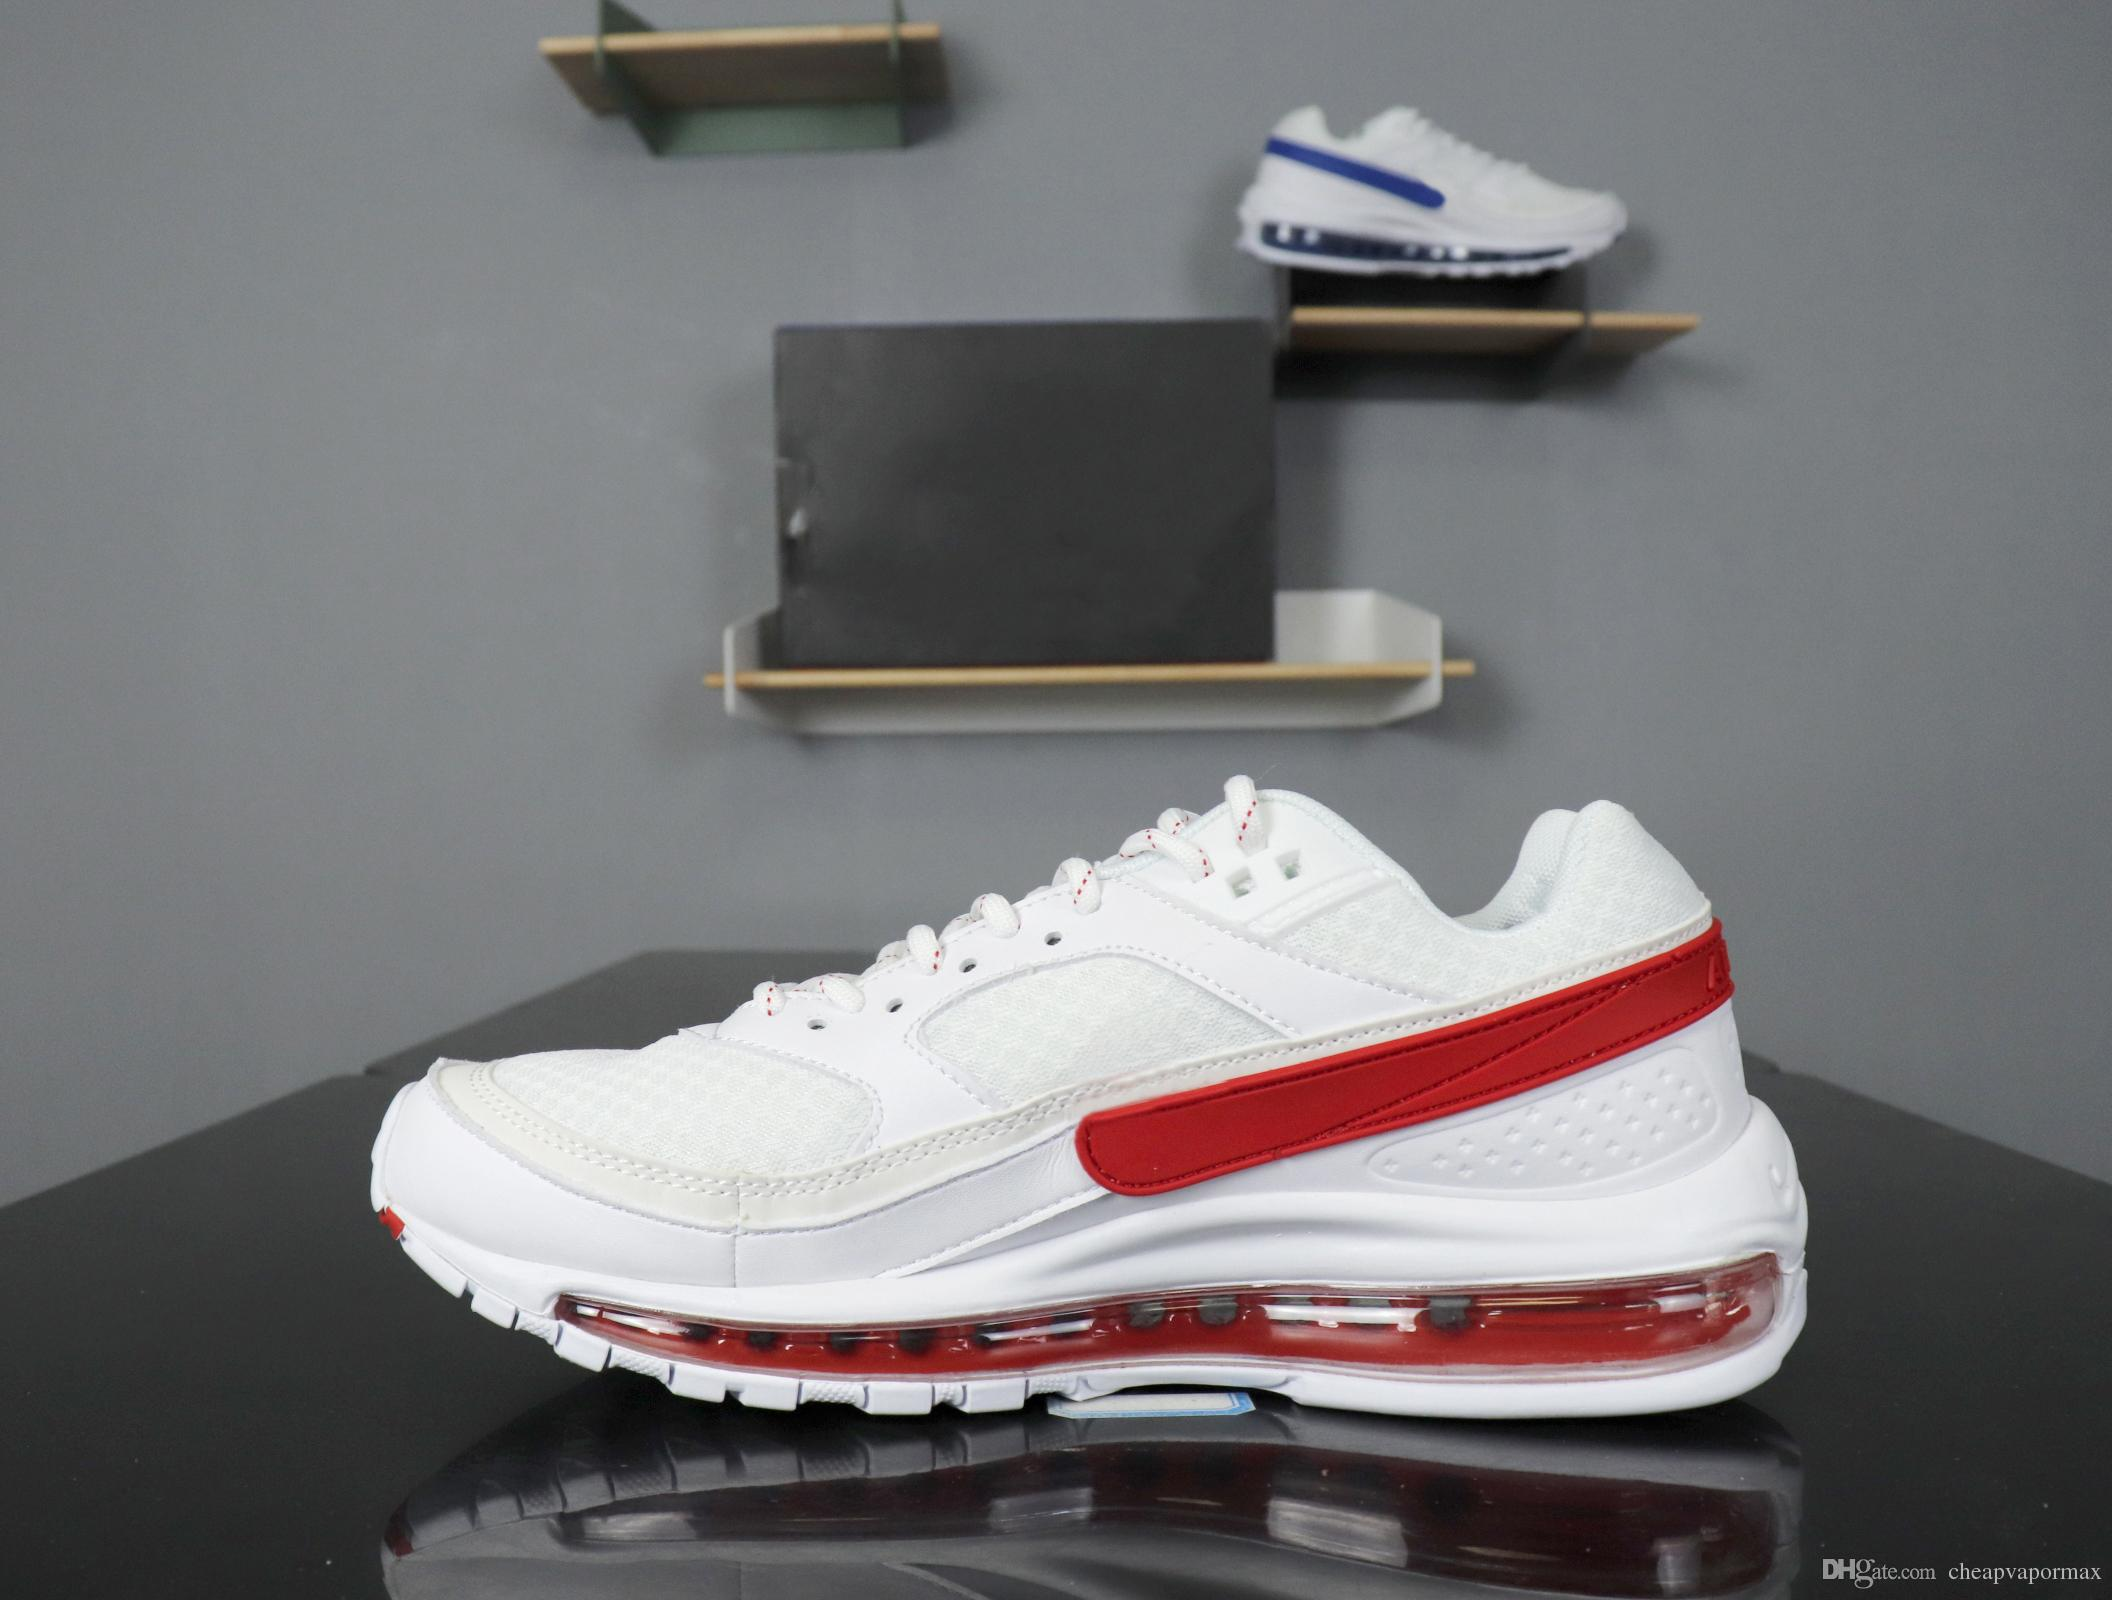 48c79922a1 WITH BOX 2018 New Arrival Skepta X 97 / BW AO2113-100 Adult Men's ...